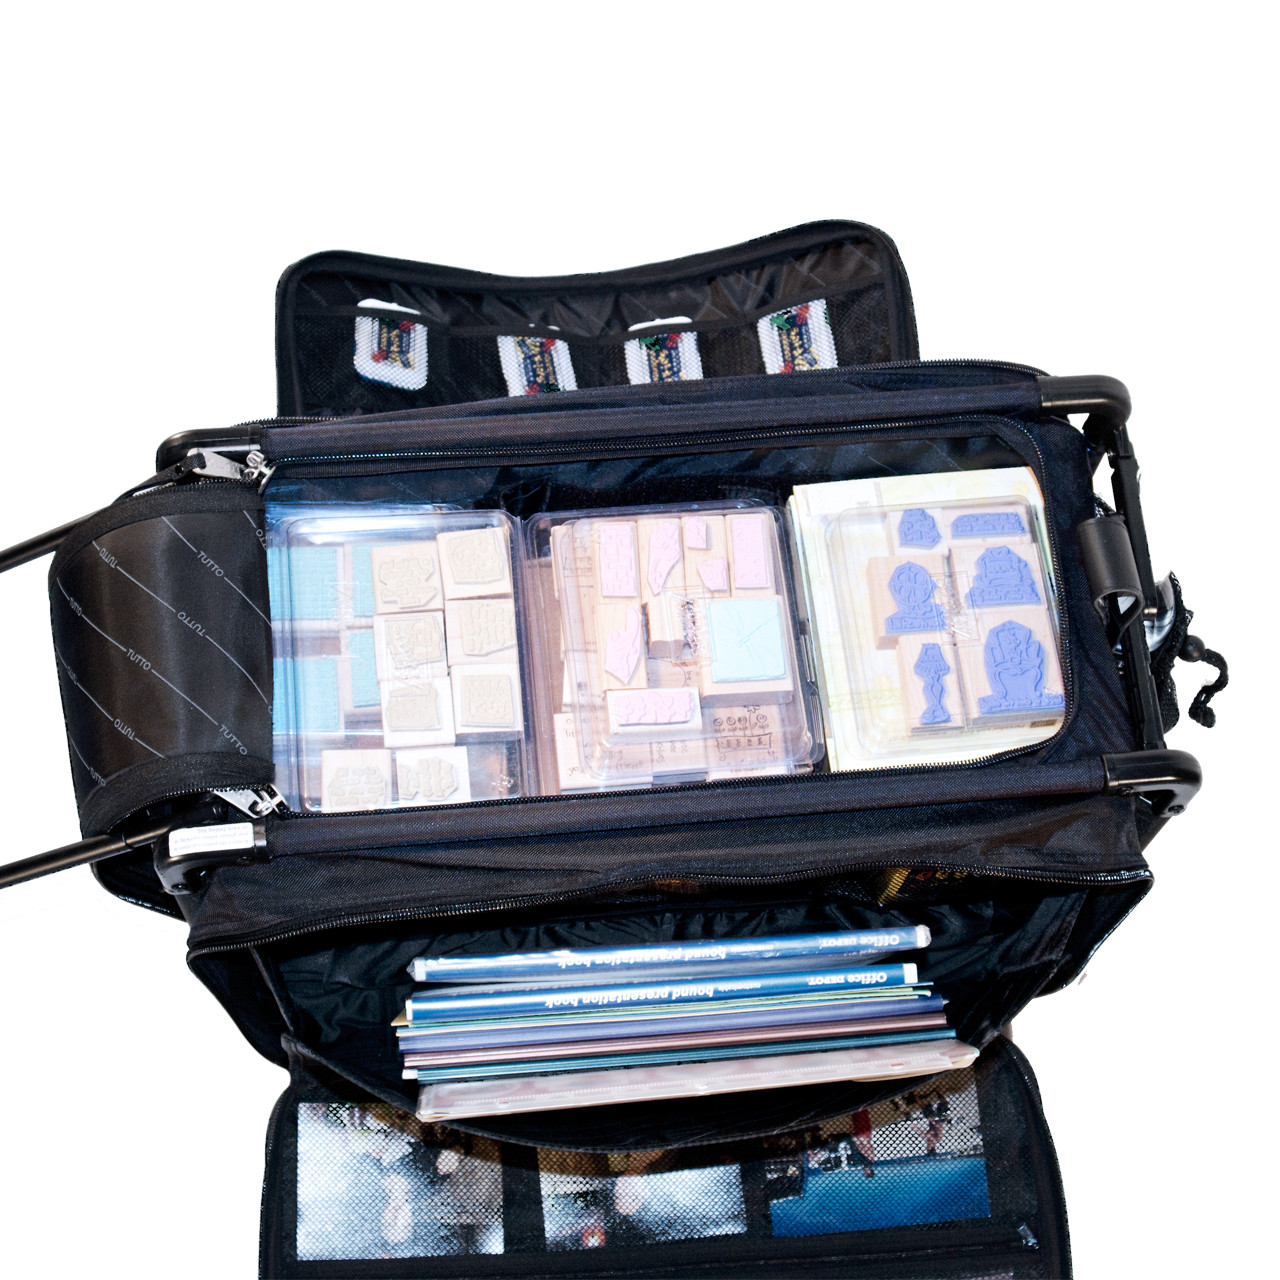 0e614ebd39 Serger Sewing Machine Bag Tutto -Tutto The Healthy Luggage- The only ...